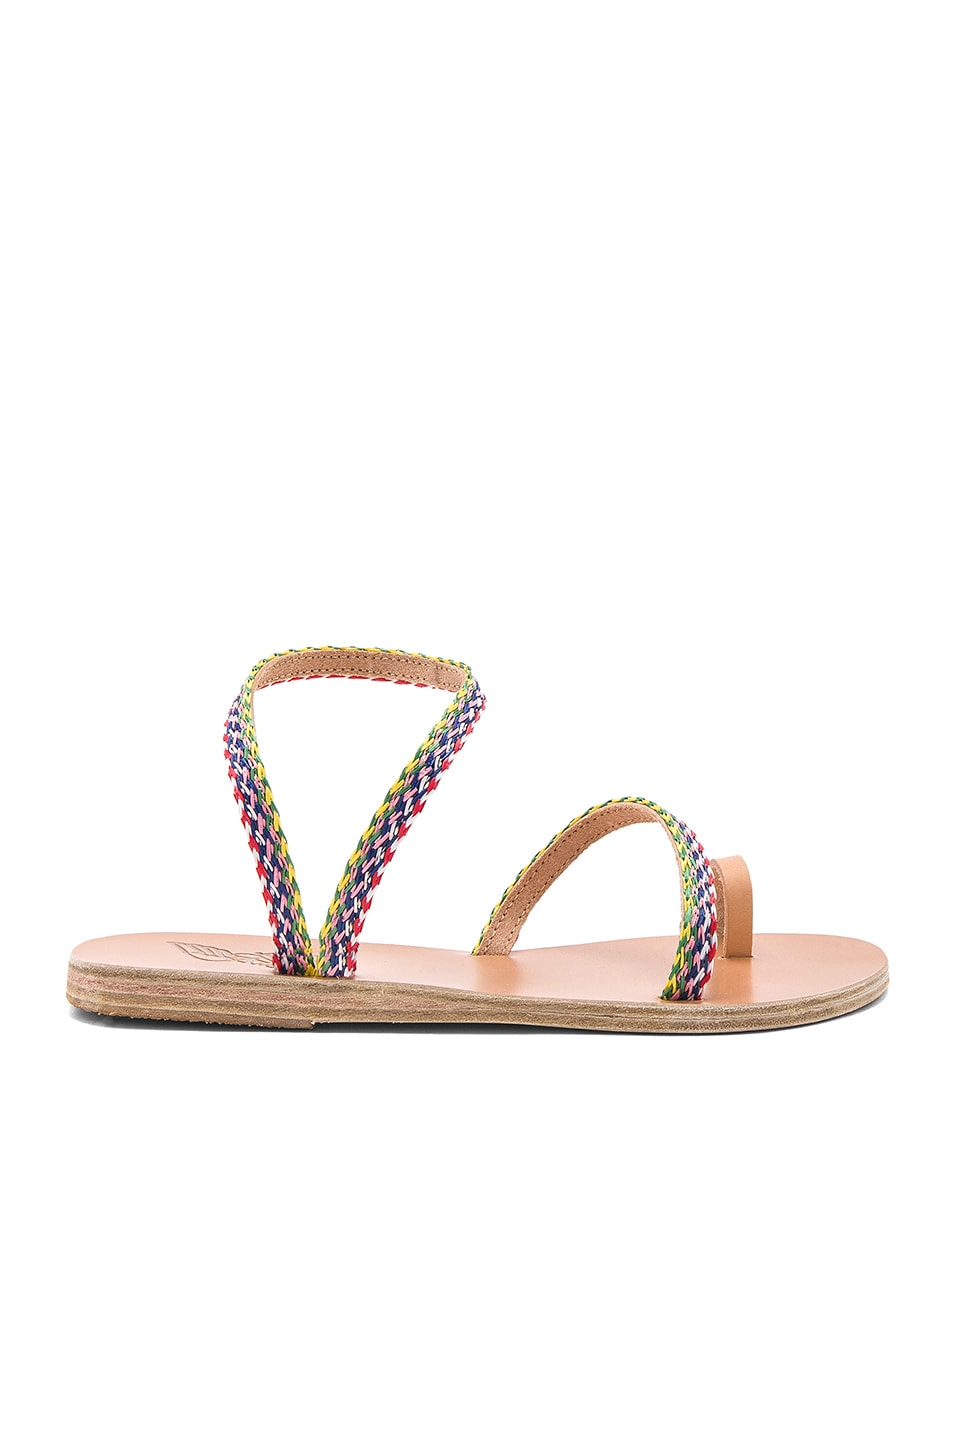 Alpi Eleftheria Raffia Sandal by Ancient Greek Sandals